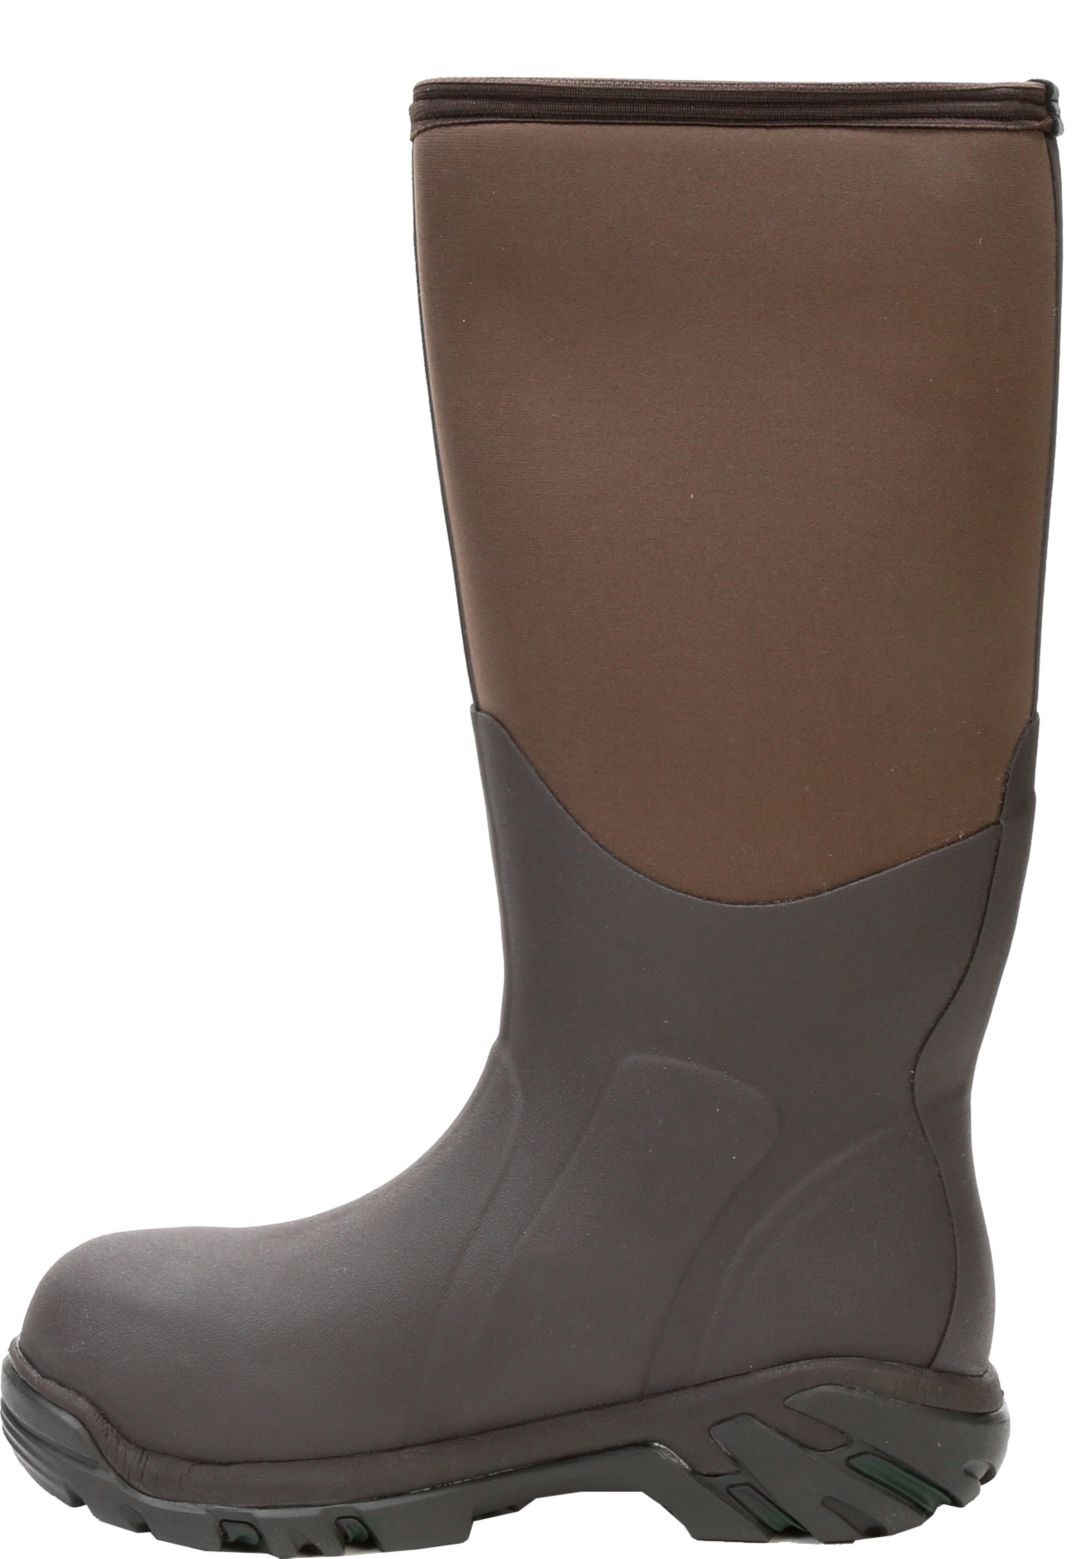 4259f4ac0 Muck Boots Adult Arctic Pro Rubber Field Hunting Boots | DICK'S ...